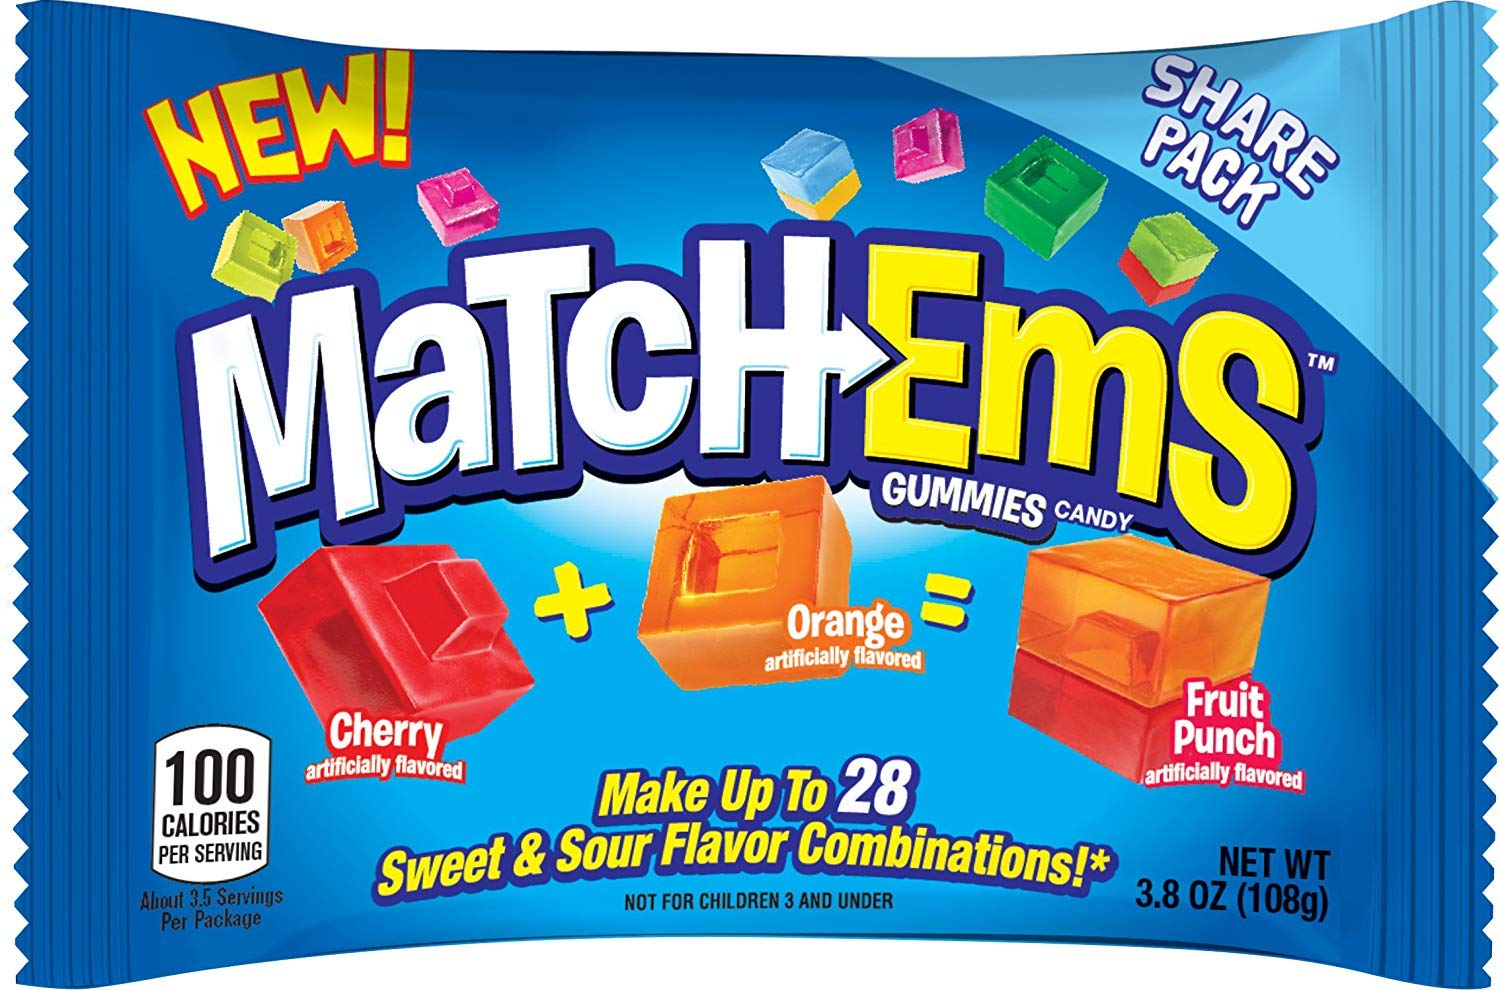 Match-Ems Gummies Candy From Bazooka Mix Assor Connect Match Max 49% OFF Max 53% OFF